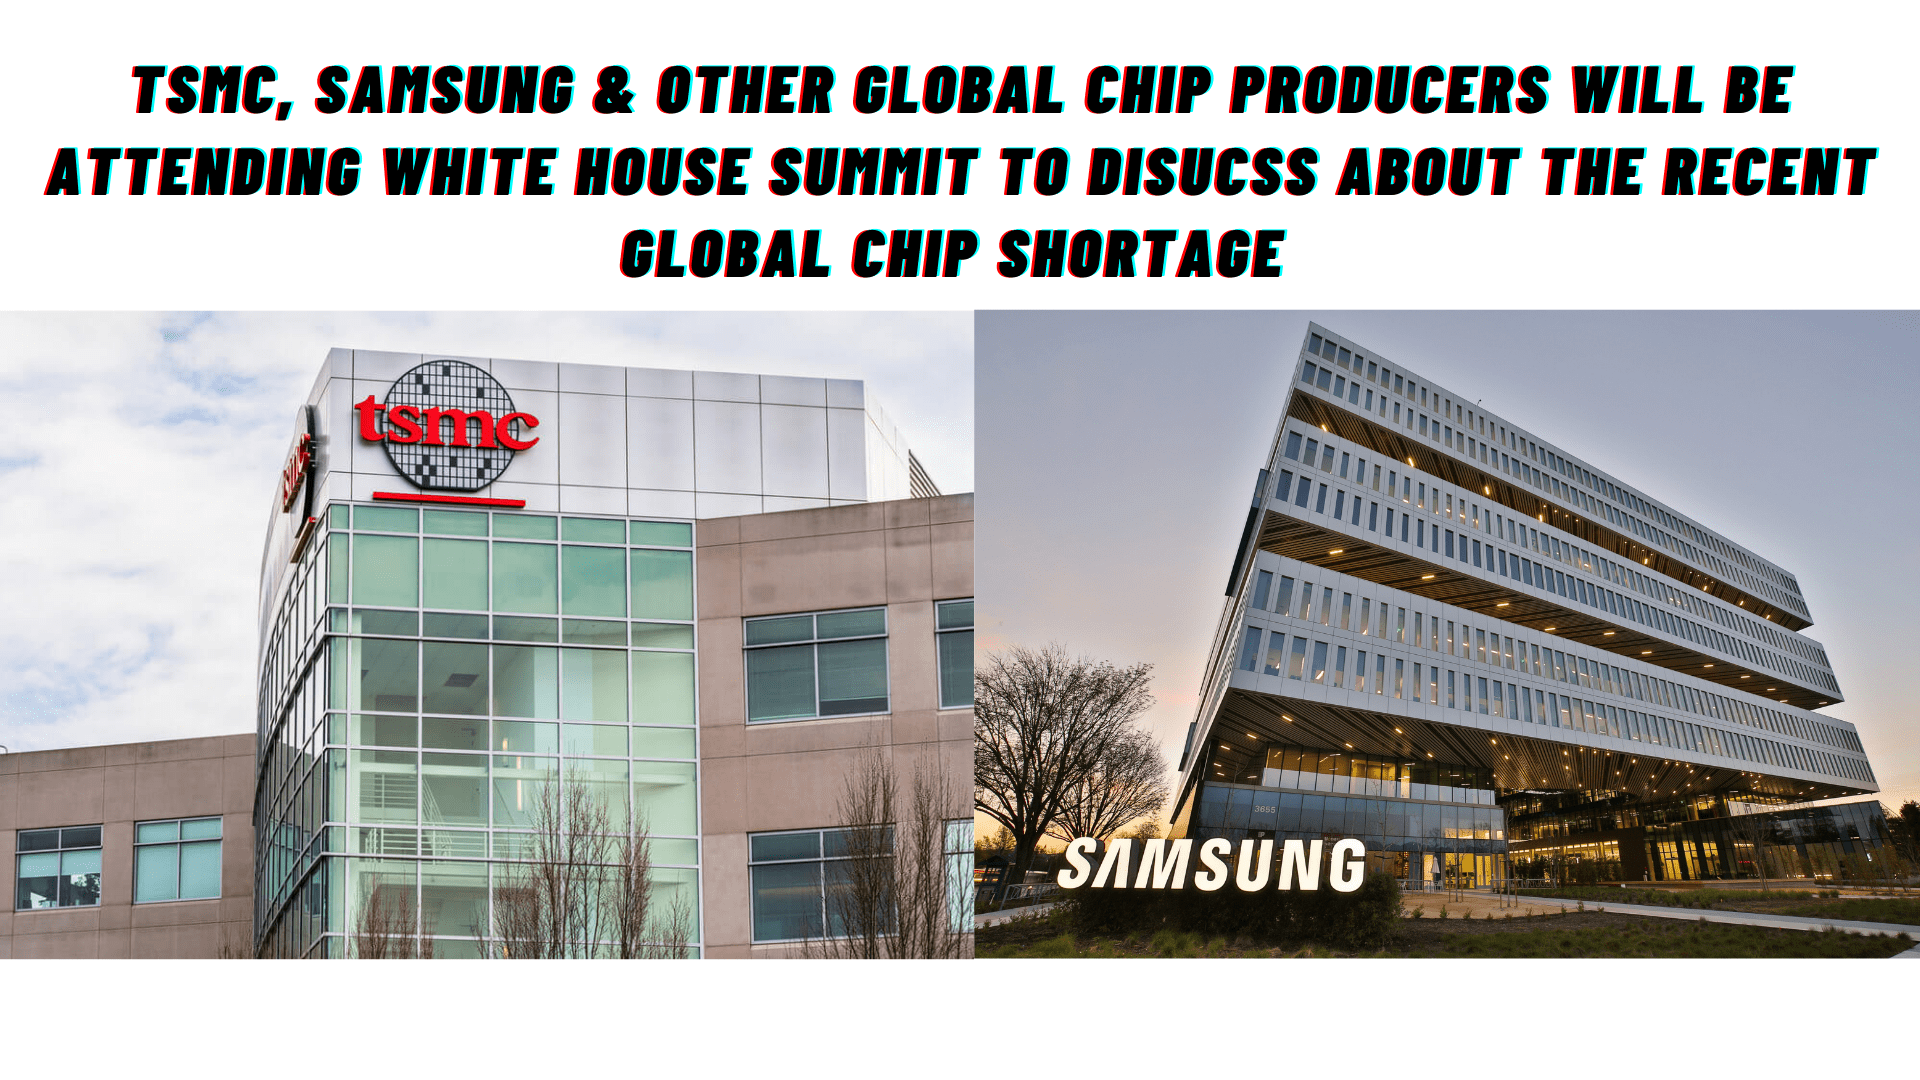 Samsung, TSMC & Major Chip Producers Called To Discuss On Reasons For The Recent Global Chip Shortage During White House Summit